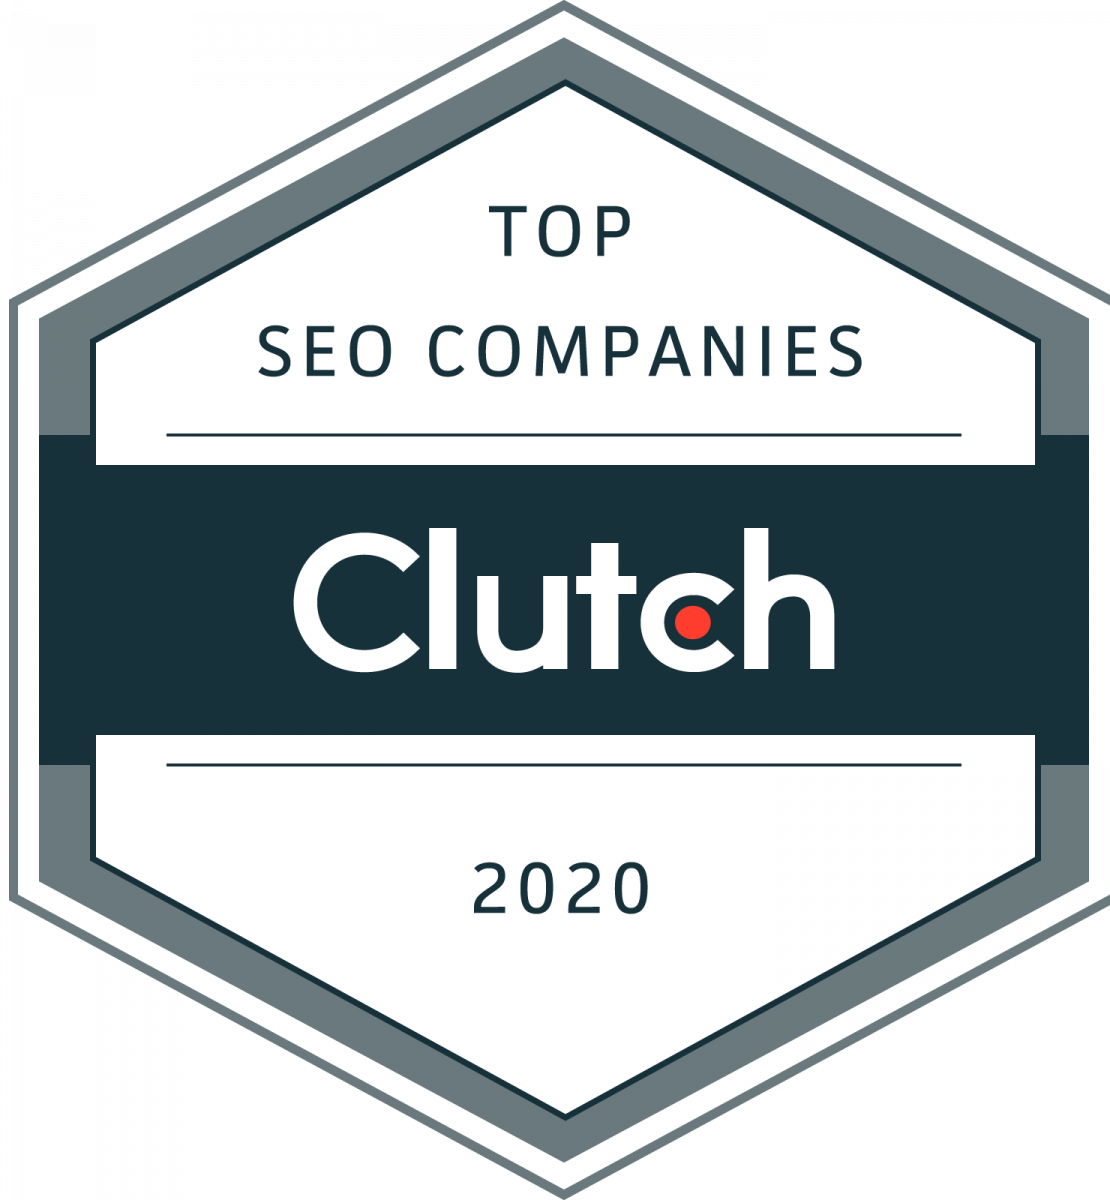 SEO Focus Areas 2020